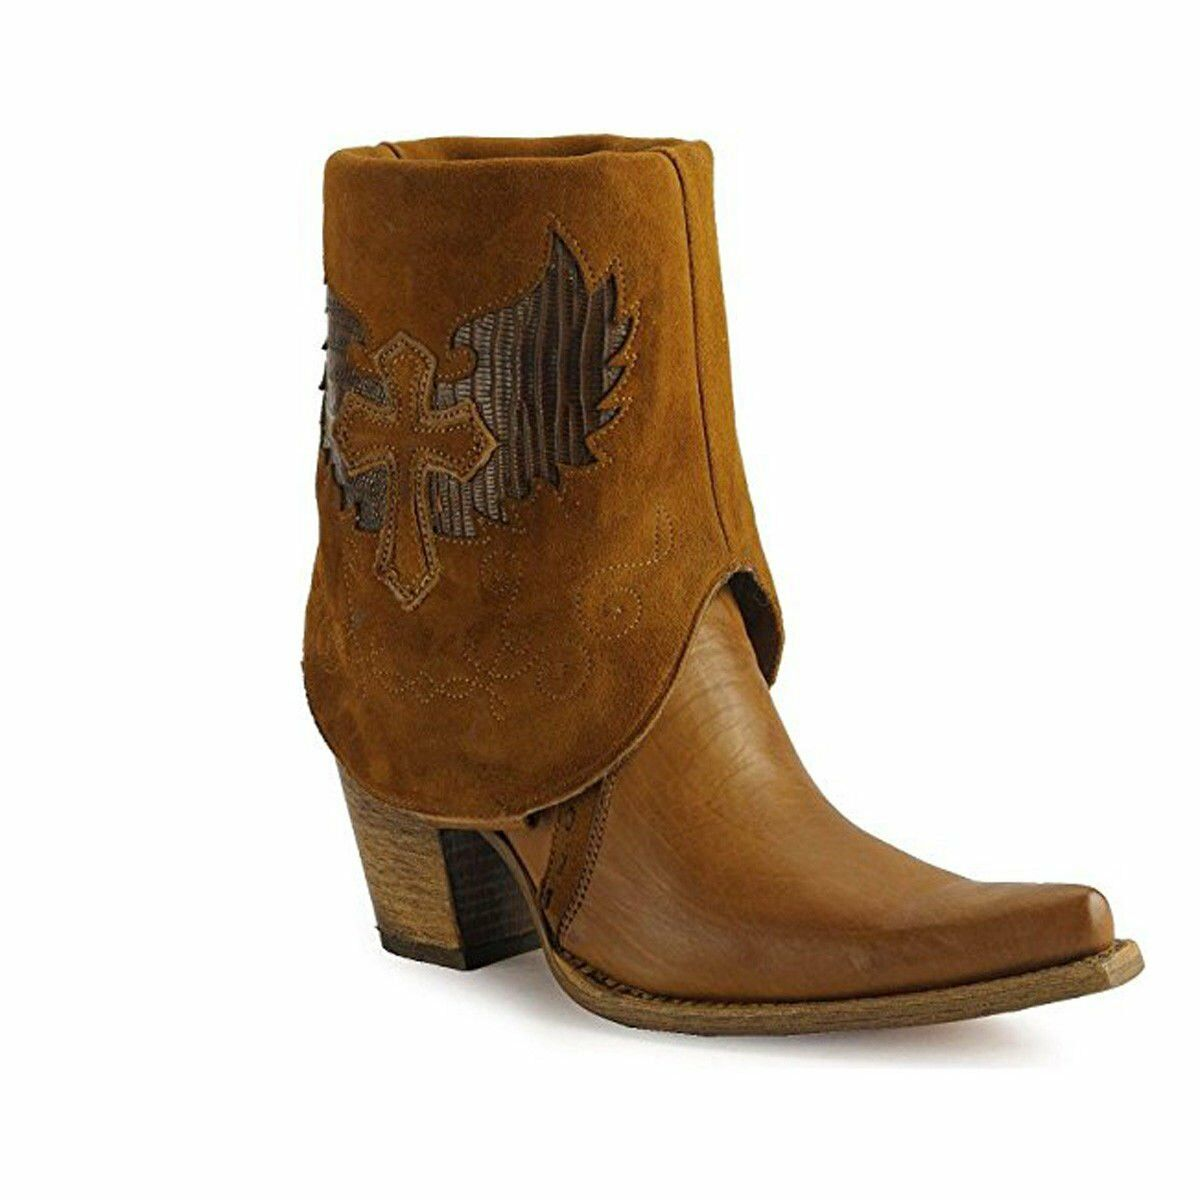 CORRAL Women's Cross Lizard Cuffed Pointed Toe Cowgirl Boots C2213